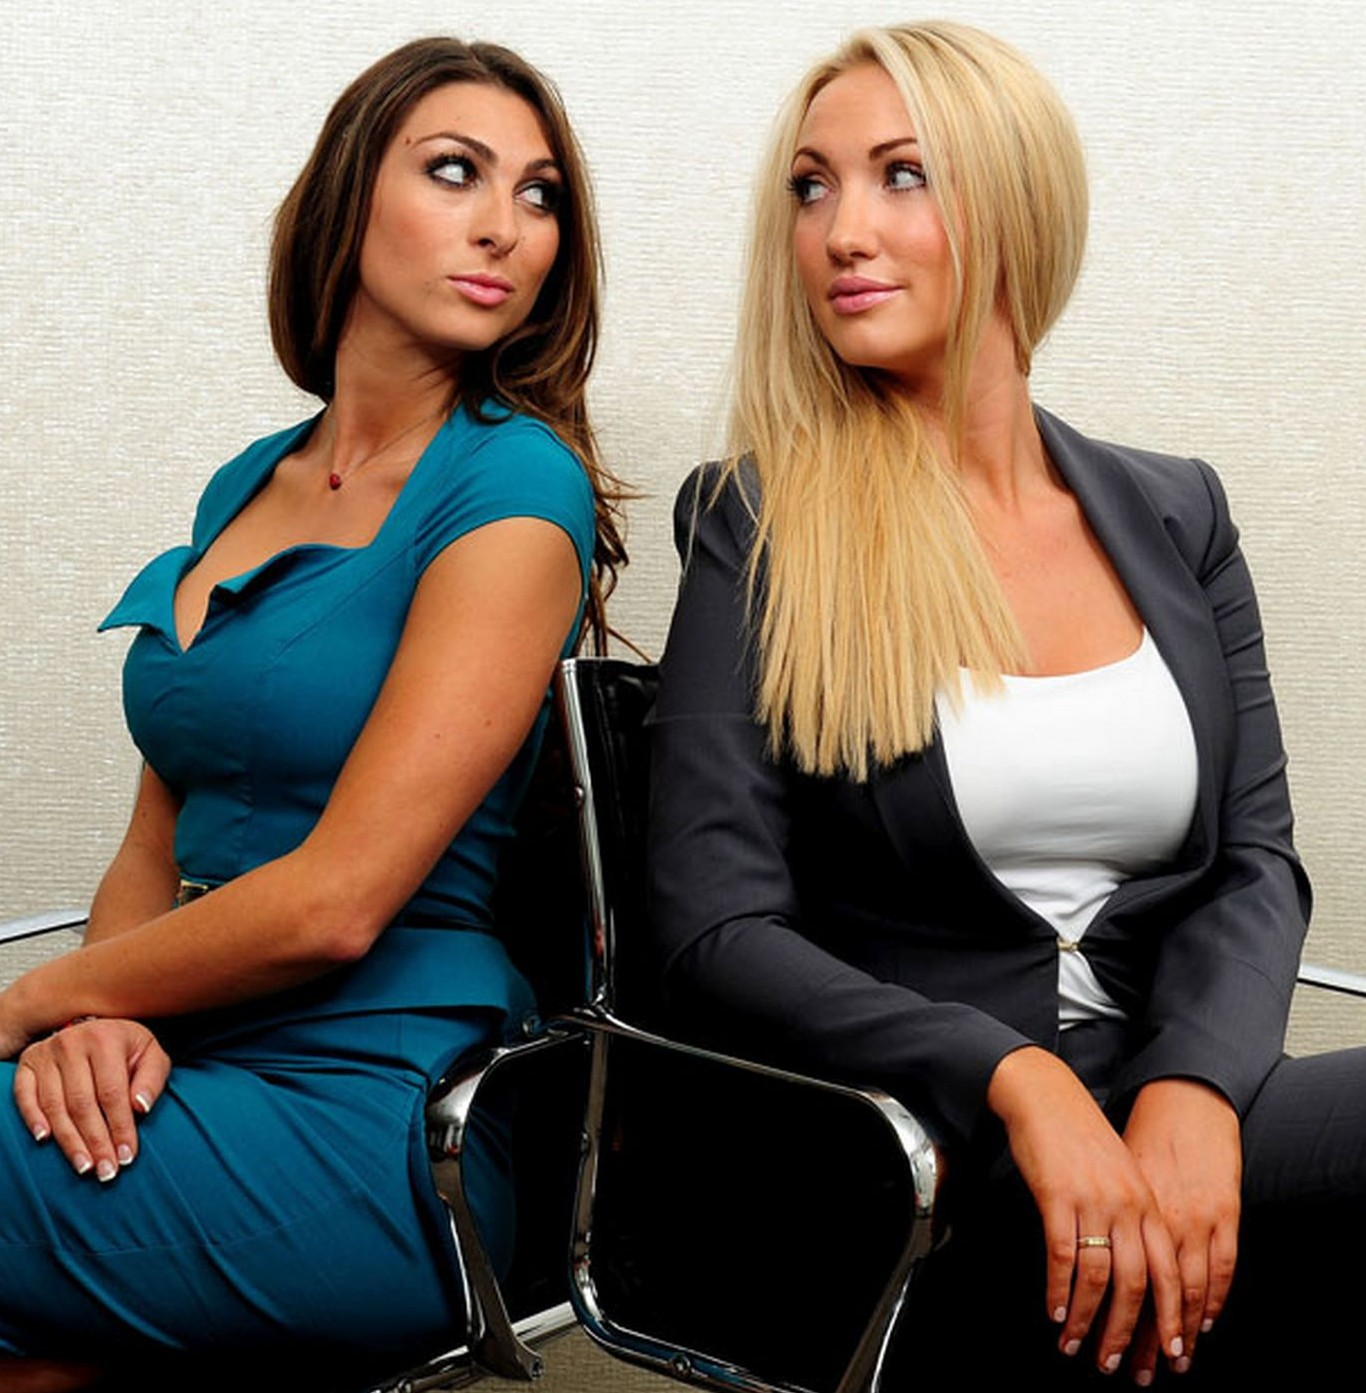 Apprentice 2013 candidates dating quotes 3